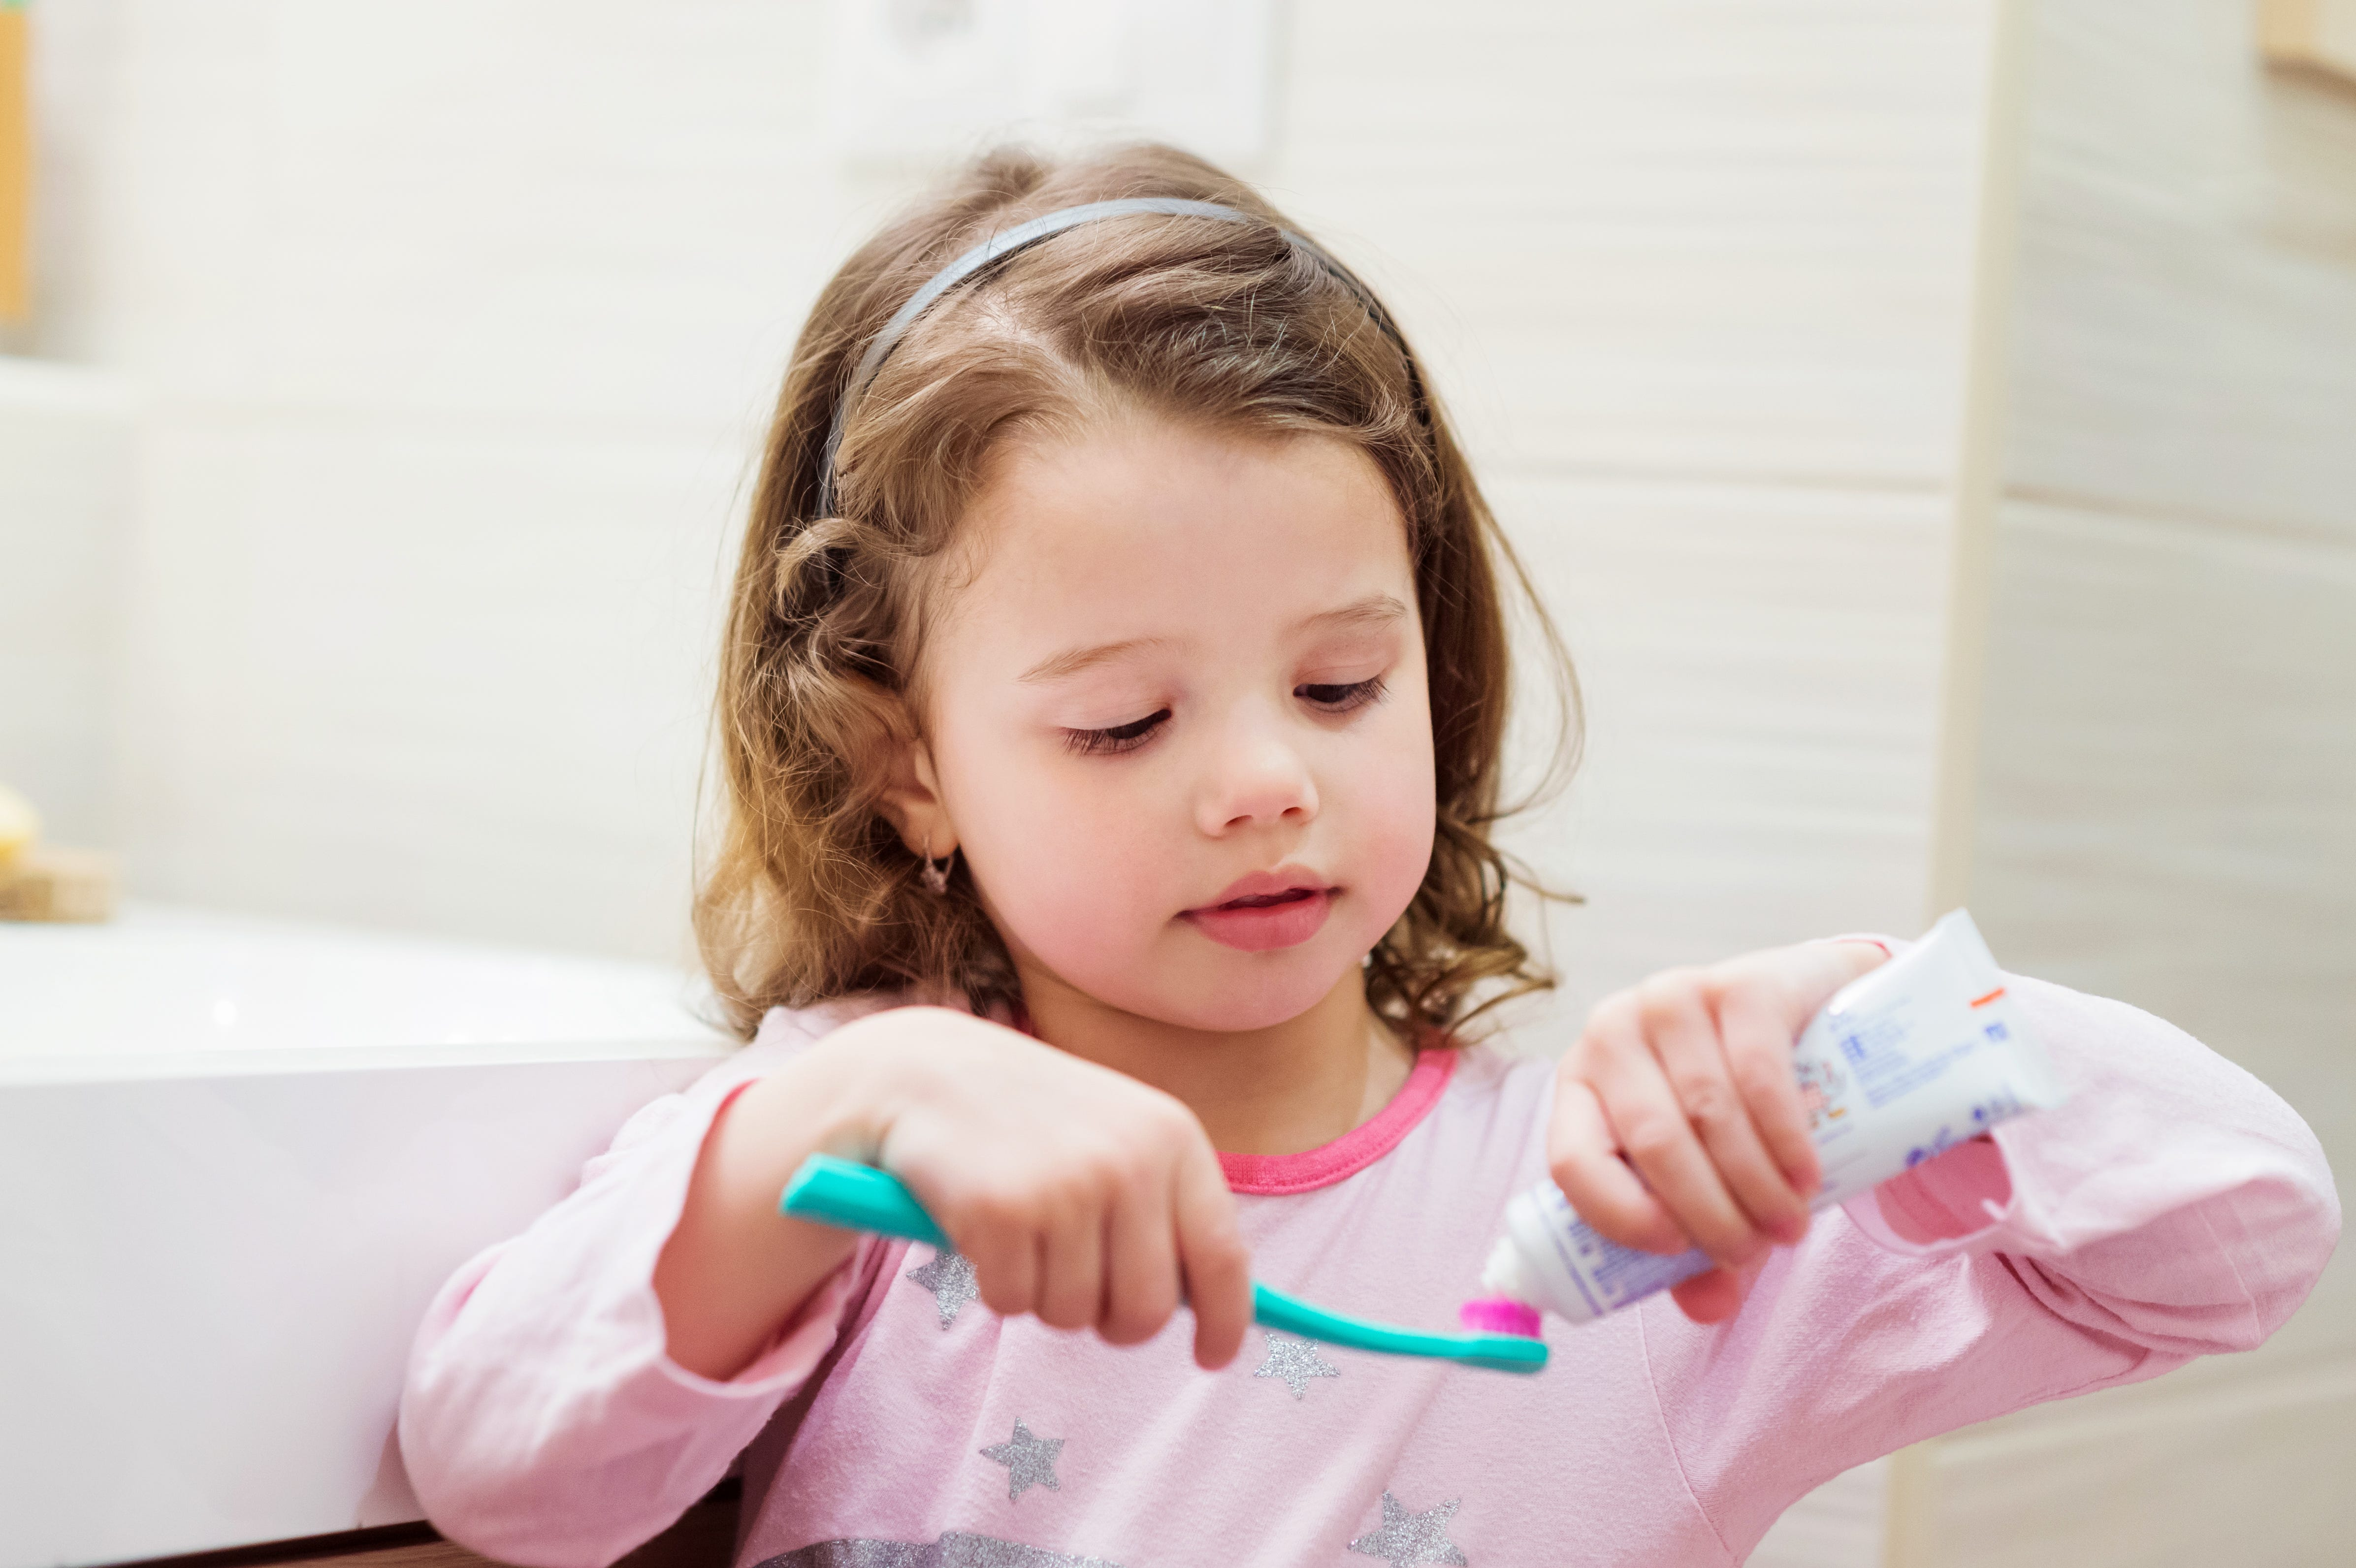 Children are using an unhealthy amount of toothpaste, CDC warns